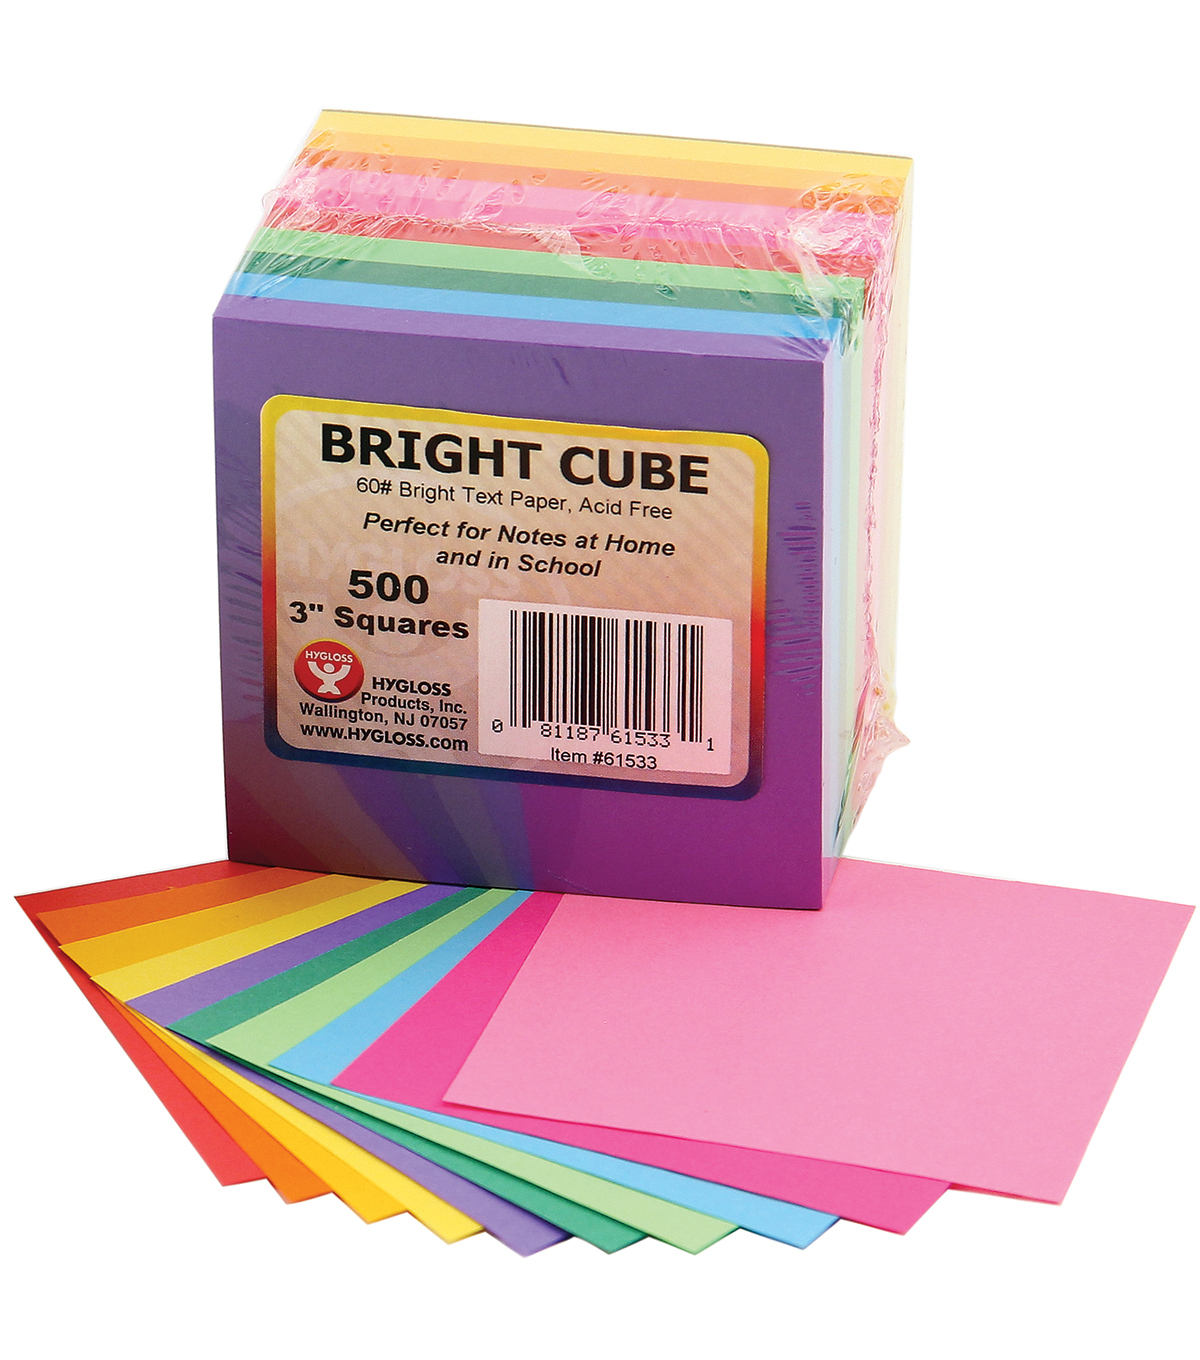 Mighty Bright Cube Paper Pad 3\u0022X3\u0022 500 Sheets/Cube-50 Sheets Each Of 10 Assorted Colors